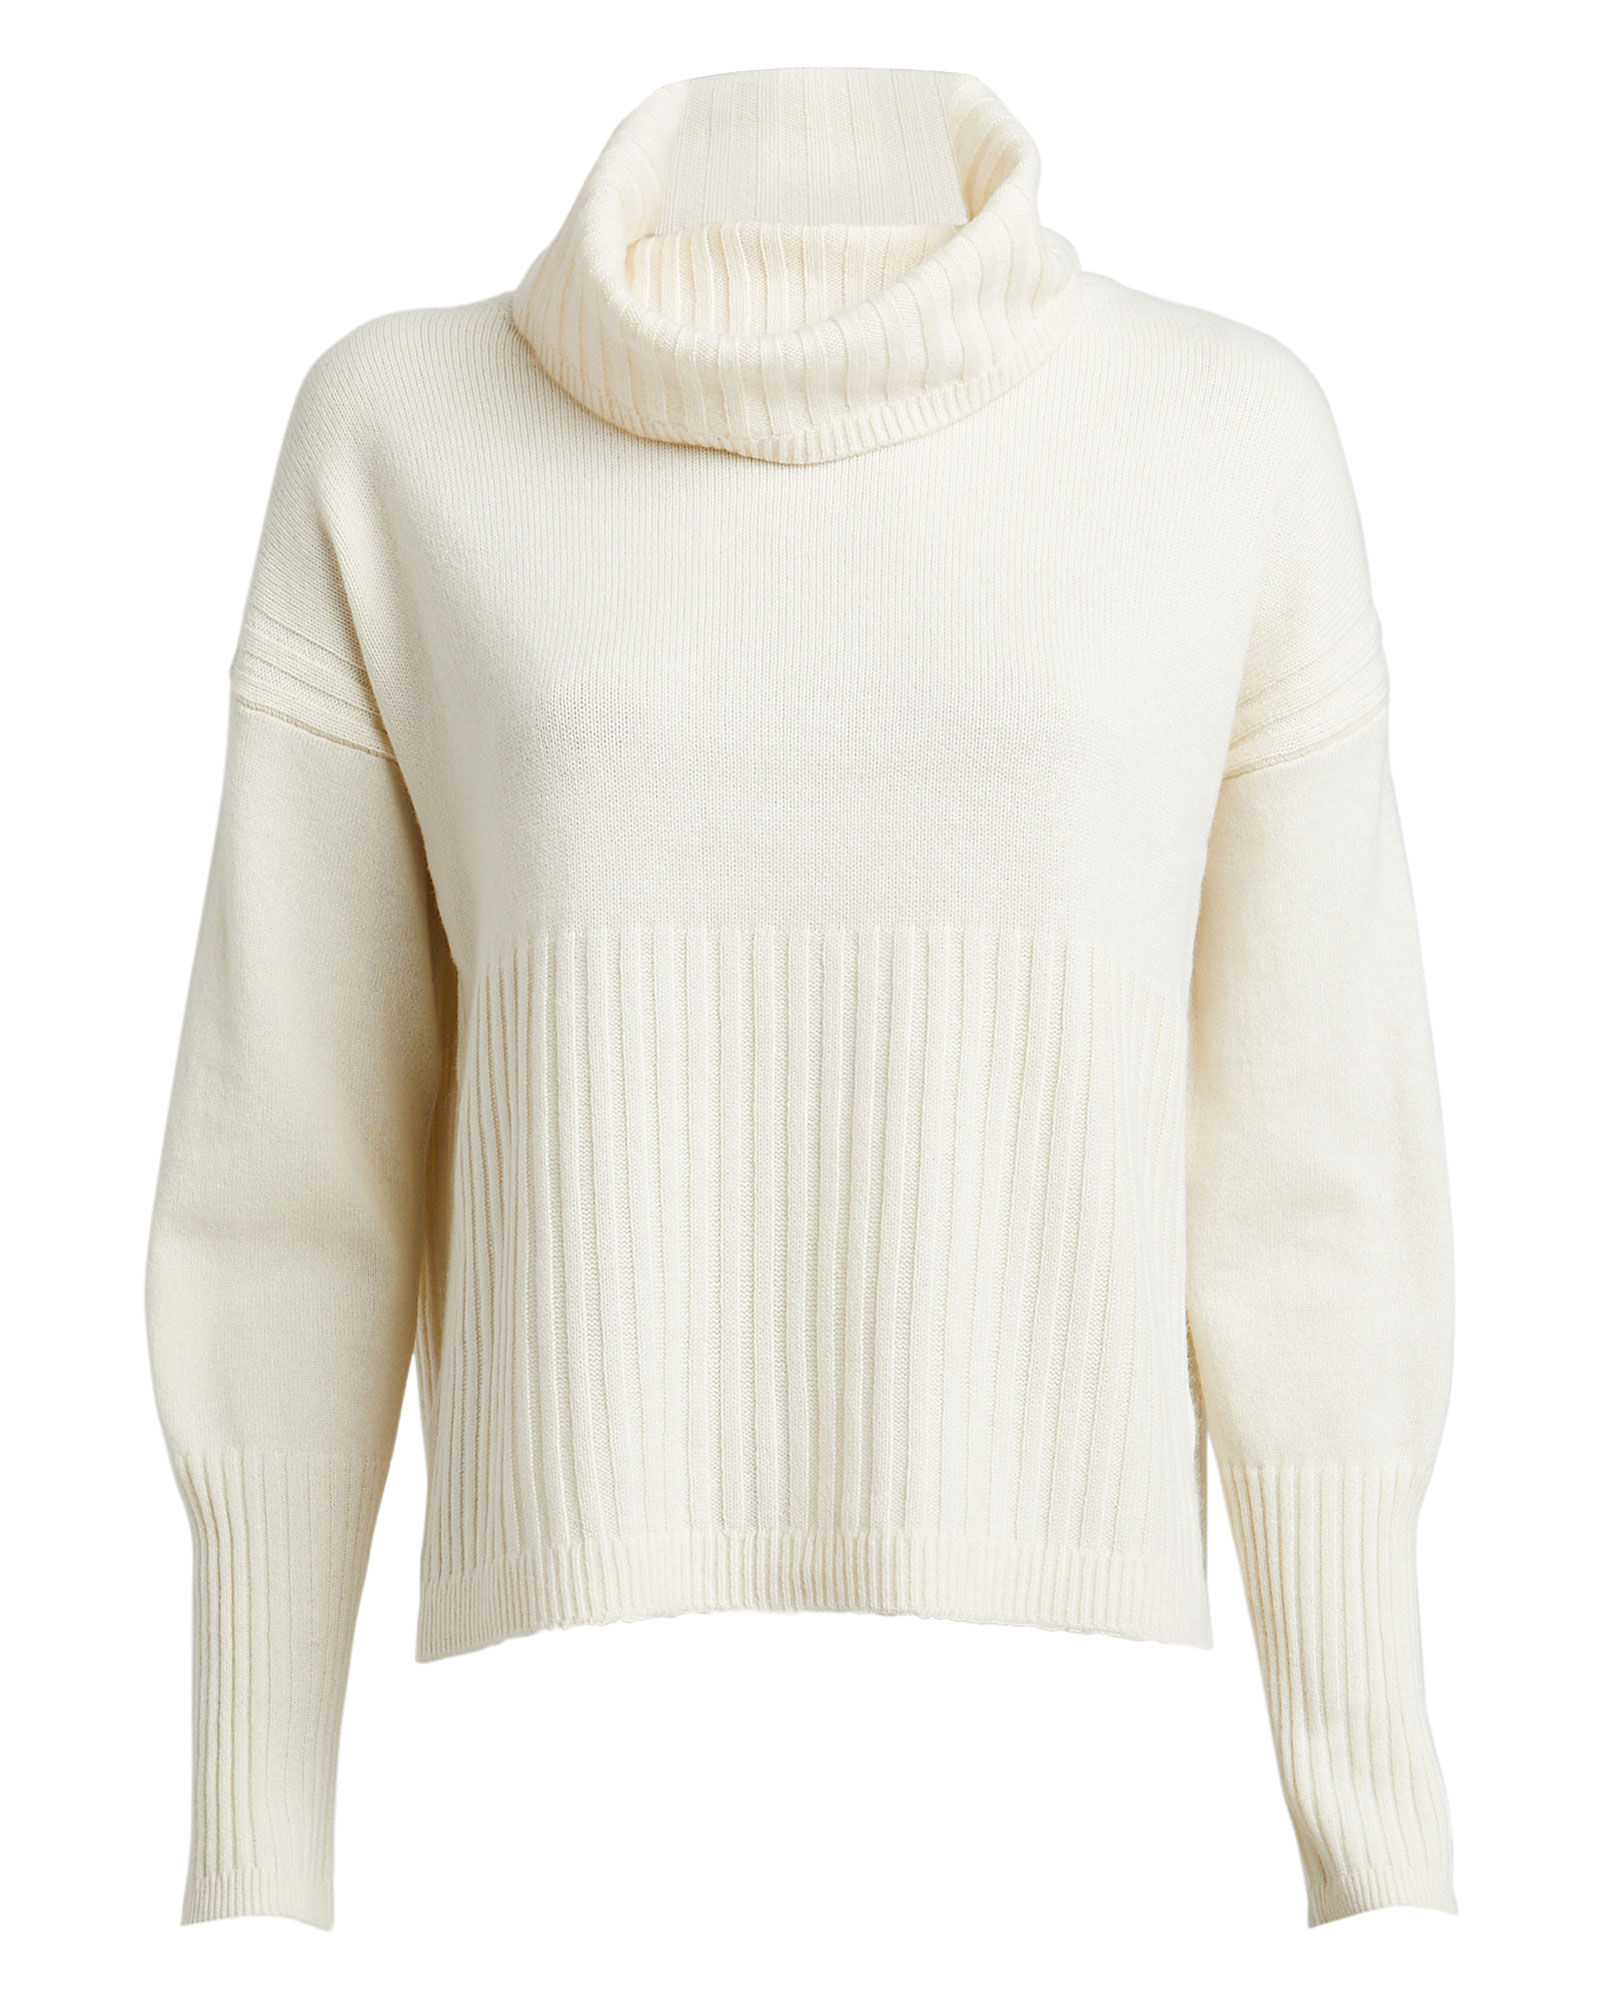 Bond Wool-Cashmere Turtleneck Sweater, IVORY, hi-res